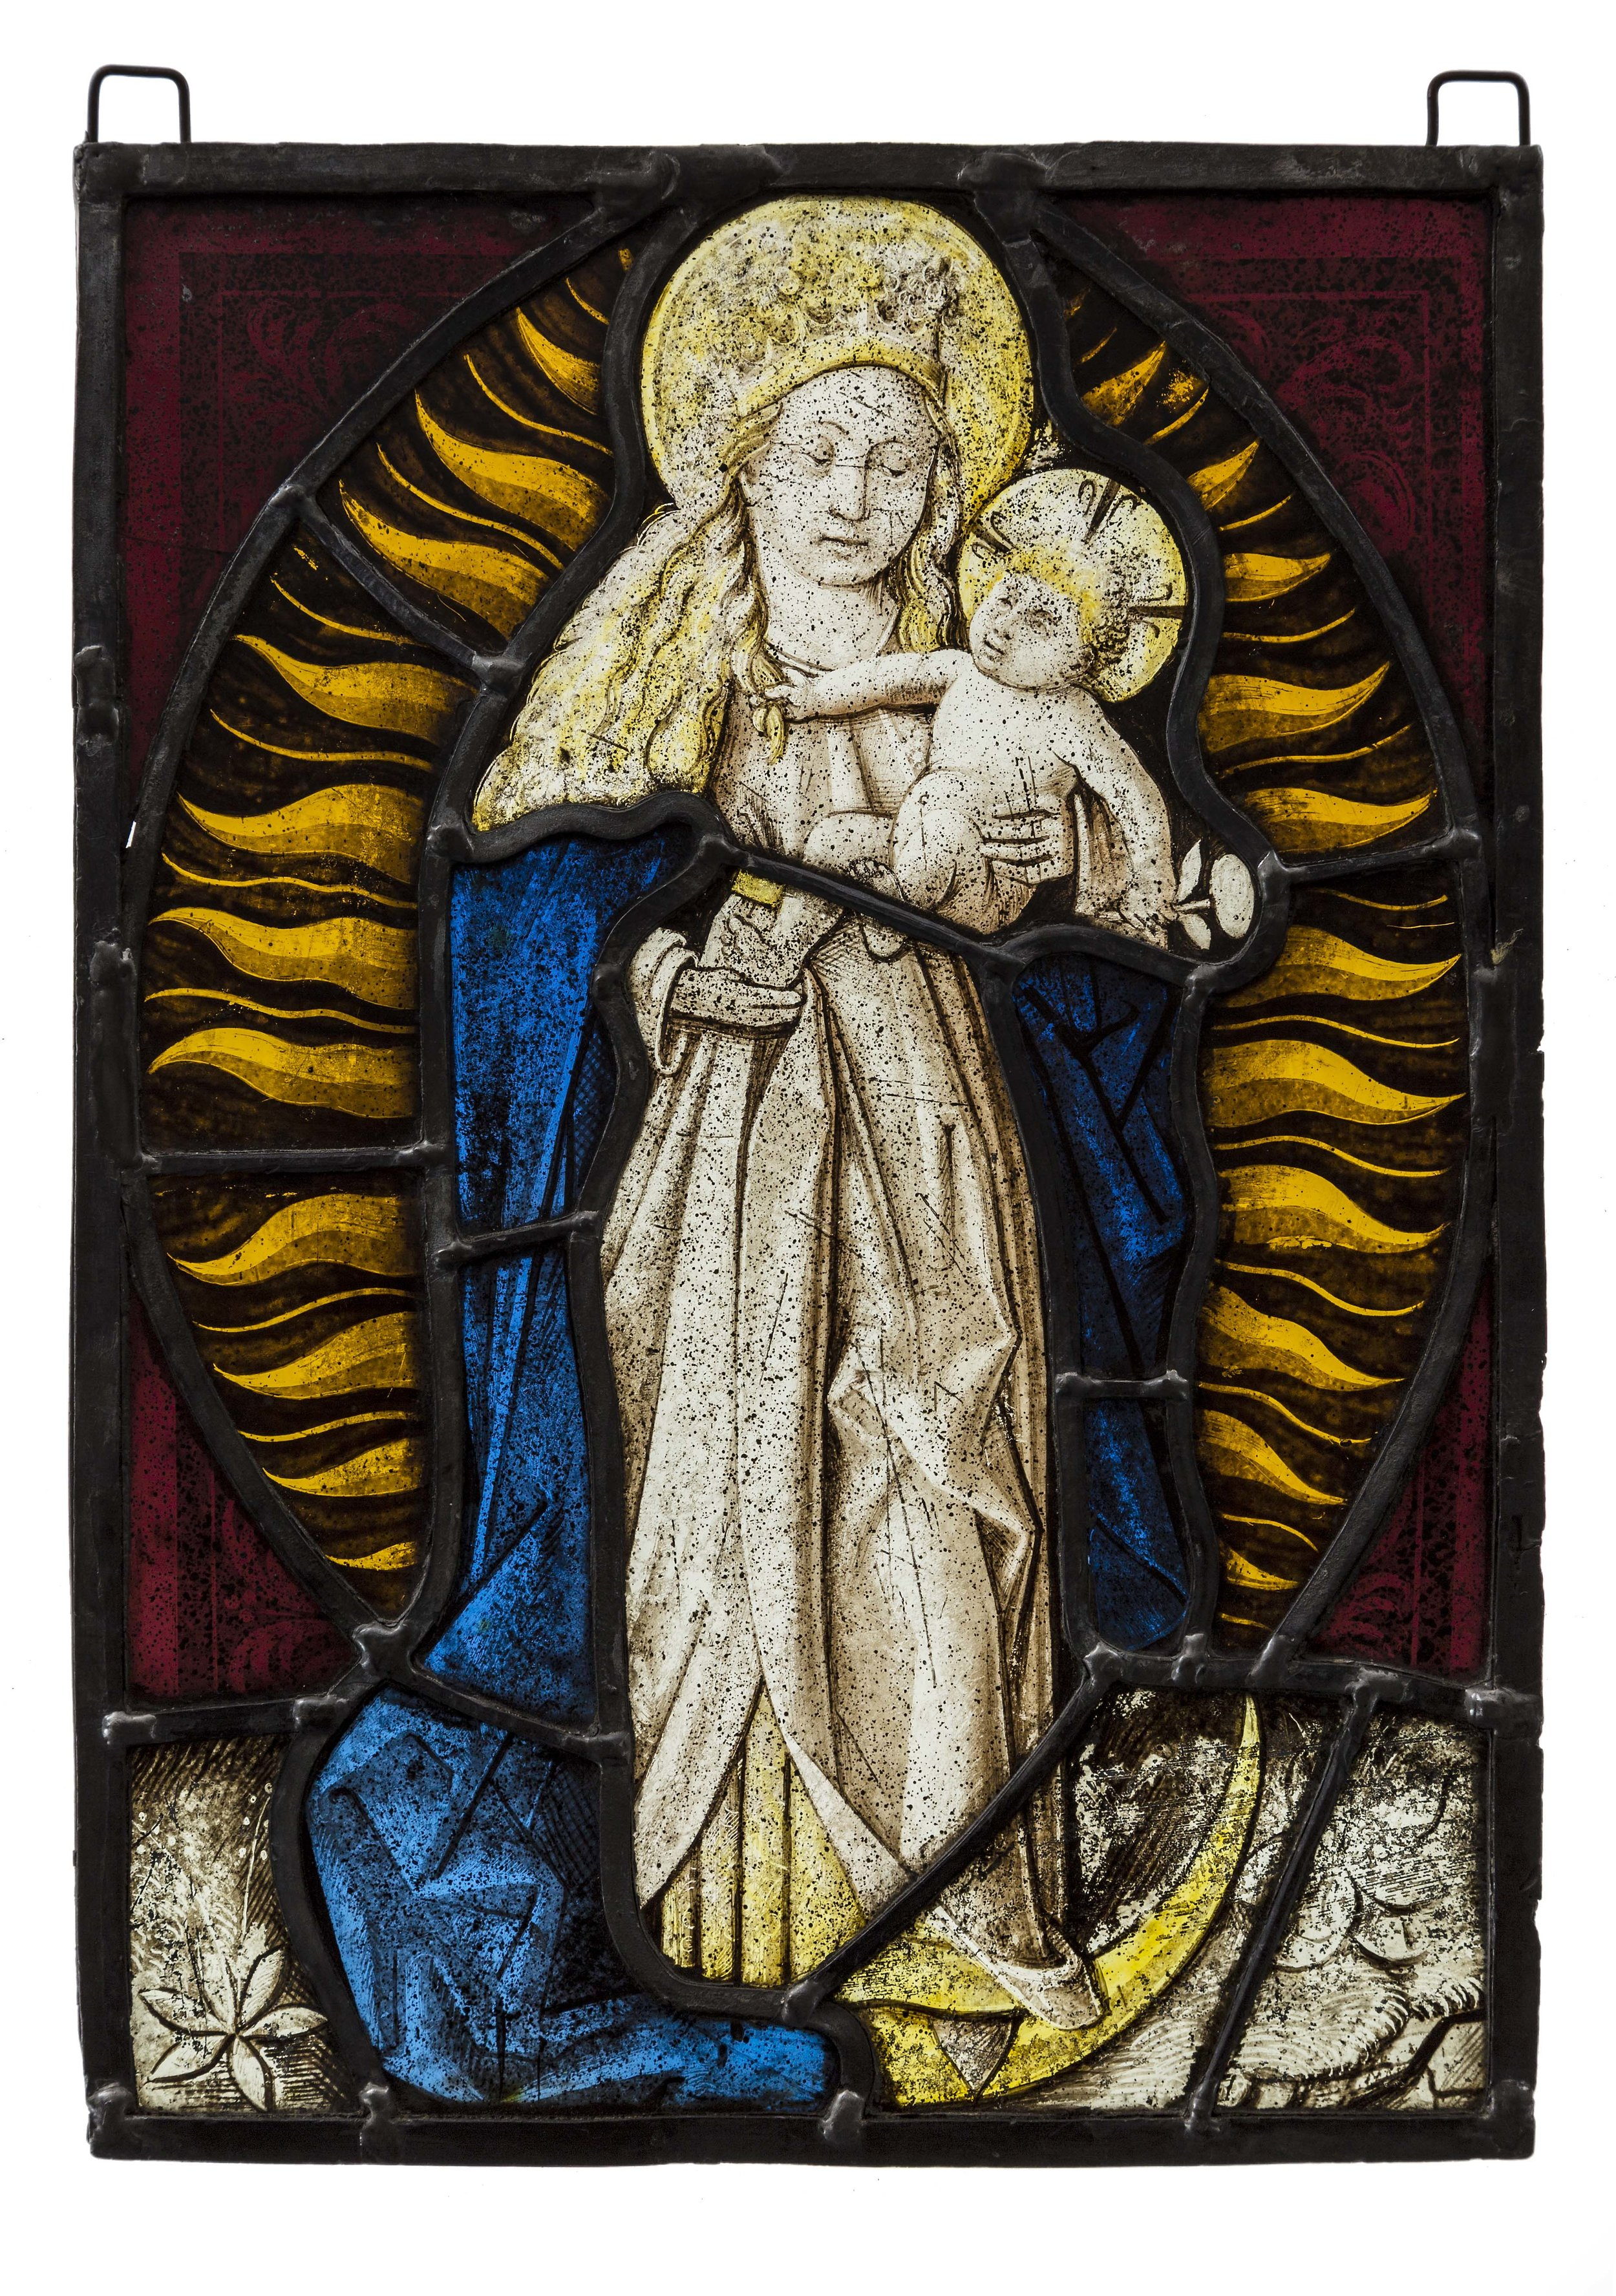 """Artist unknown, Flemish Stained glass, c. late 15th century, The Virgin is depicted as the """"Woman of the Apocalypse"""", and is set against stylised sun rays with the moon at her feet; """"the sun for her mantle, the moon under her feet"""" (Apocalypse of St John 12:1-2), 27 x 20 cm Australian Catholic University Art Collection Acquired 2017. Image courtesy of ACU University."""